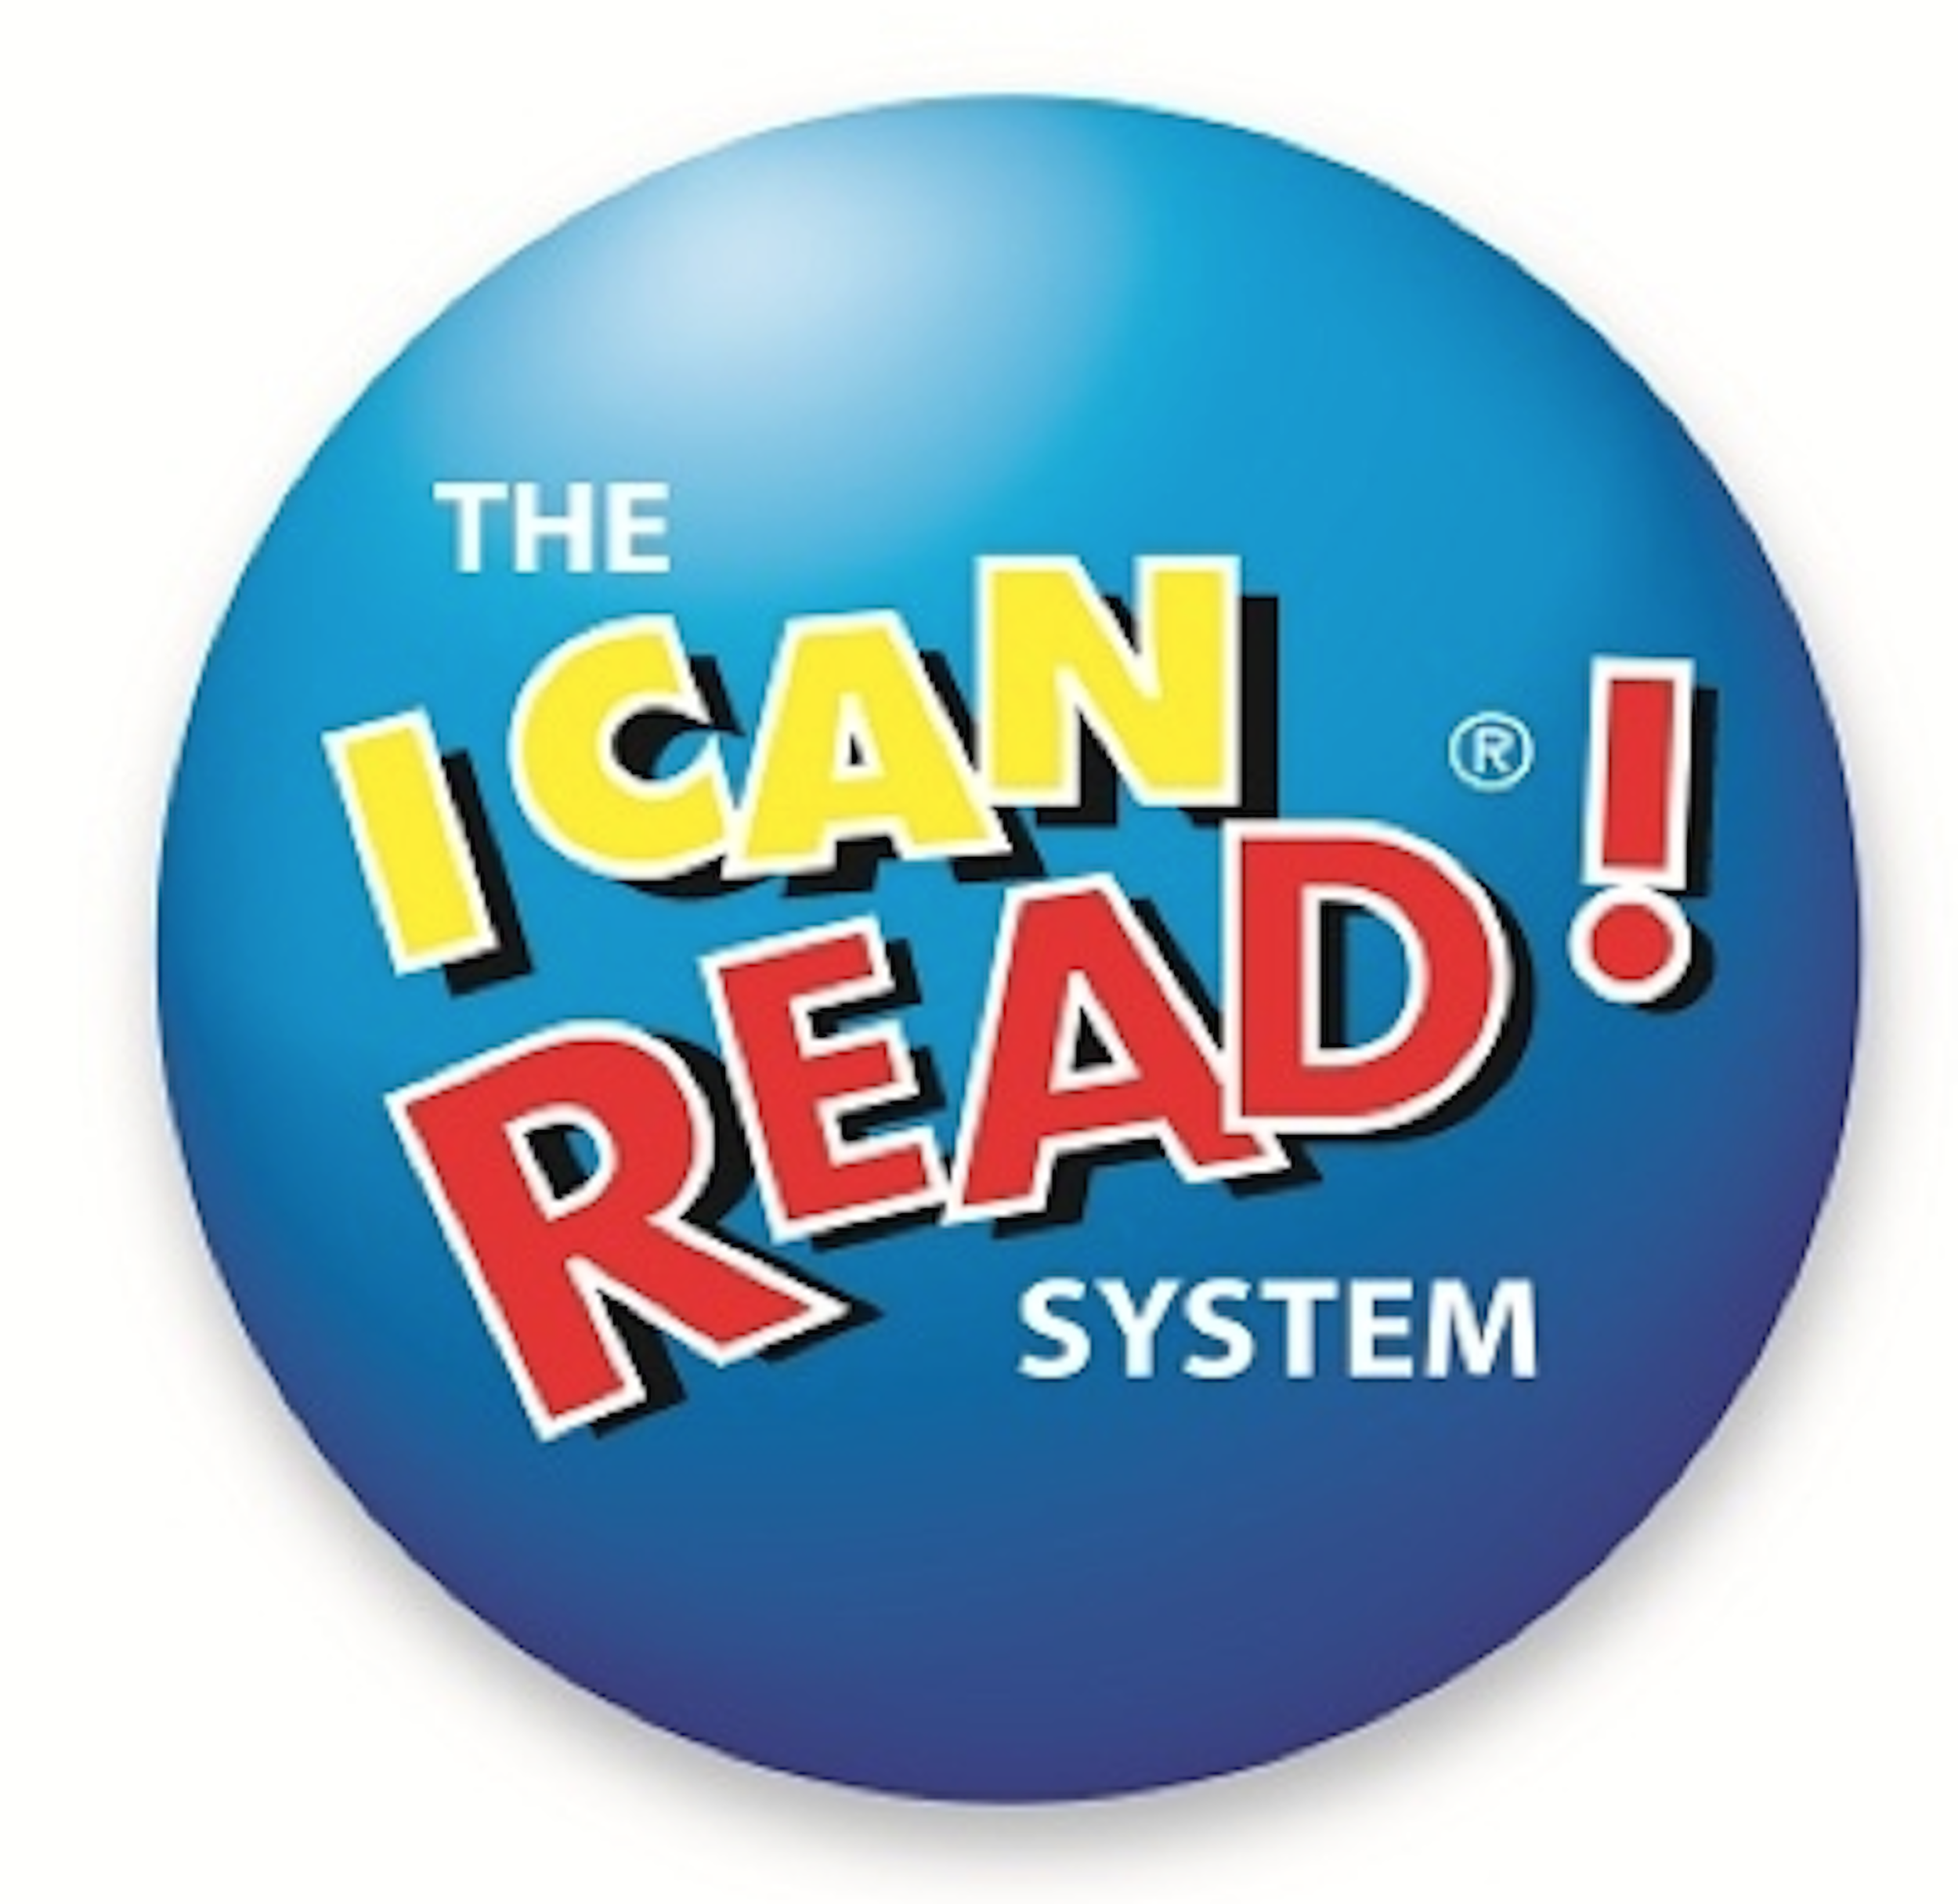 Term 2 Classes & Activities Guide – I Can Read Ryde